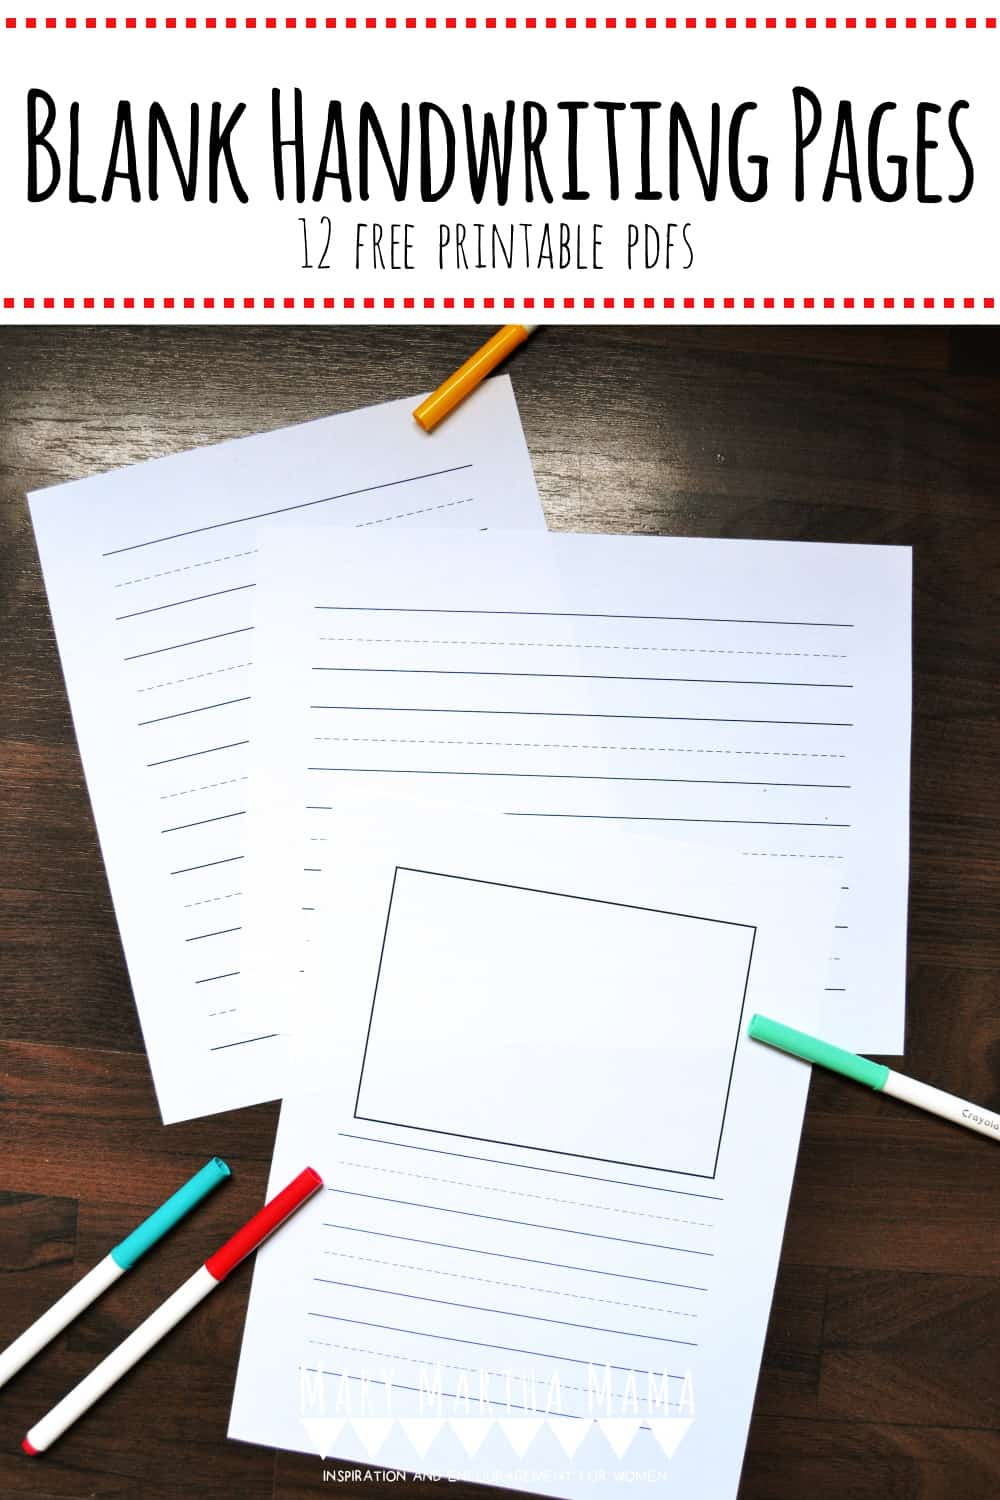 Does your kiddo need to work on handwriting? Use these 12 different styles of blank handwriting sheets to help your child practice.